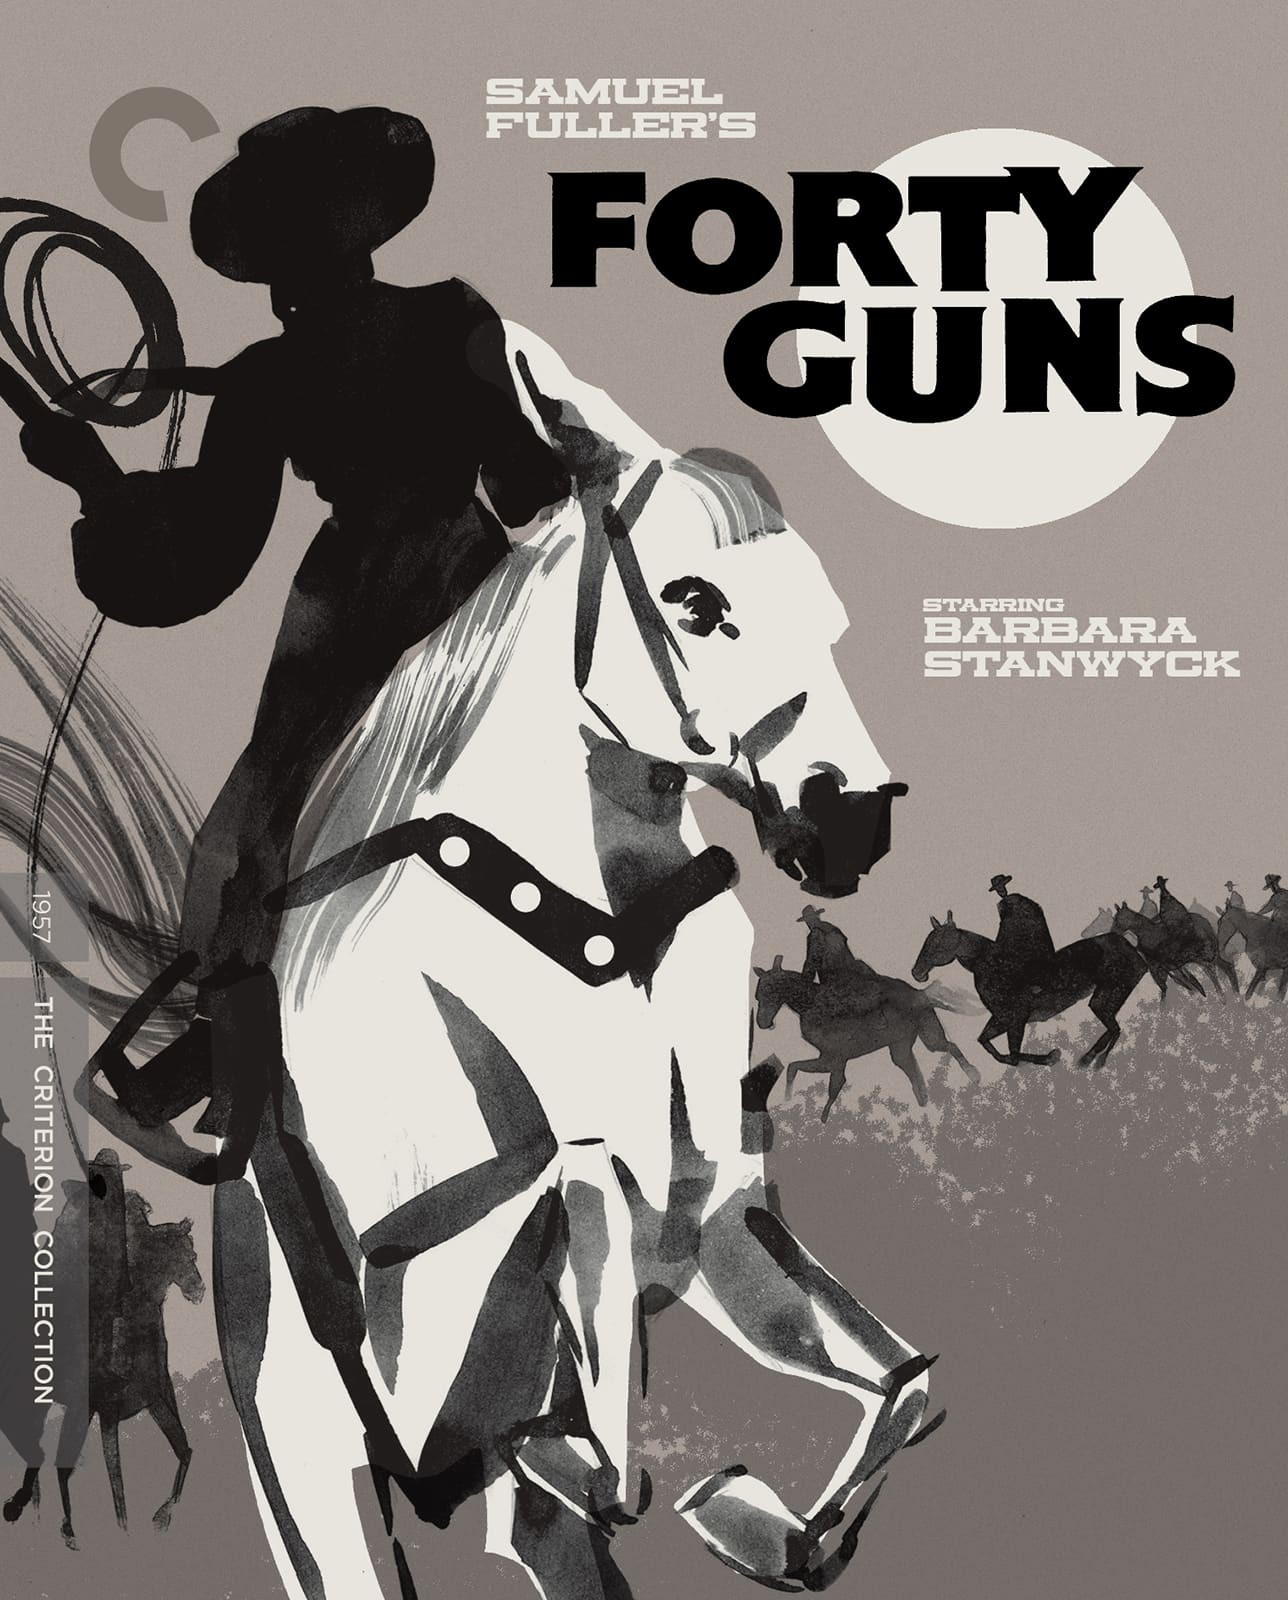 Forty Guns (1957) | The Criterion Collection